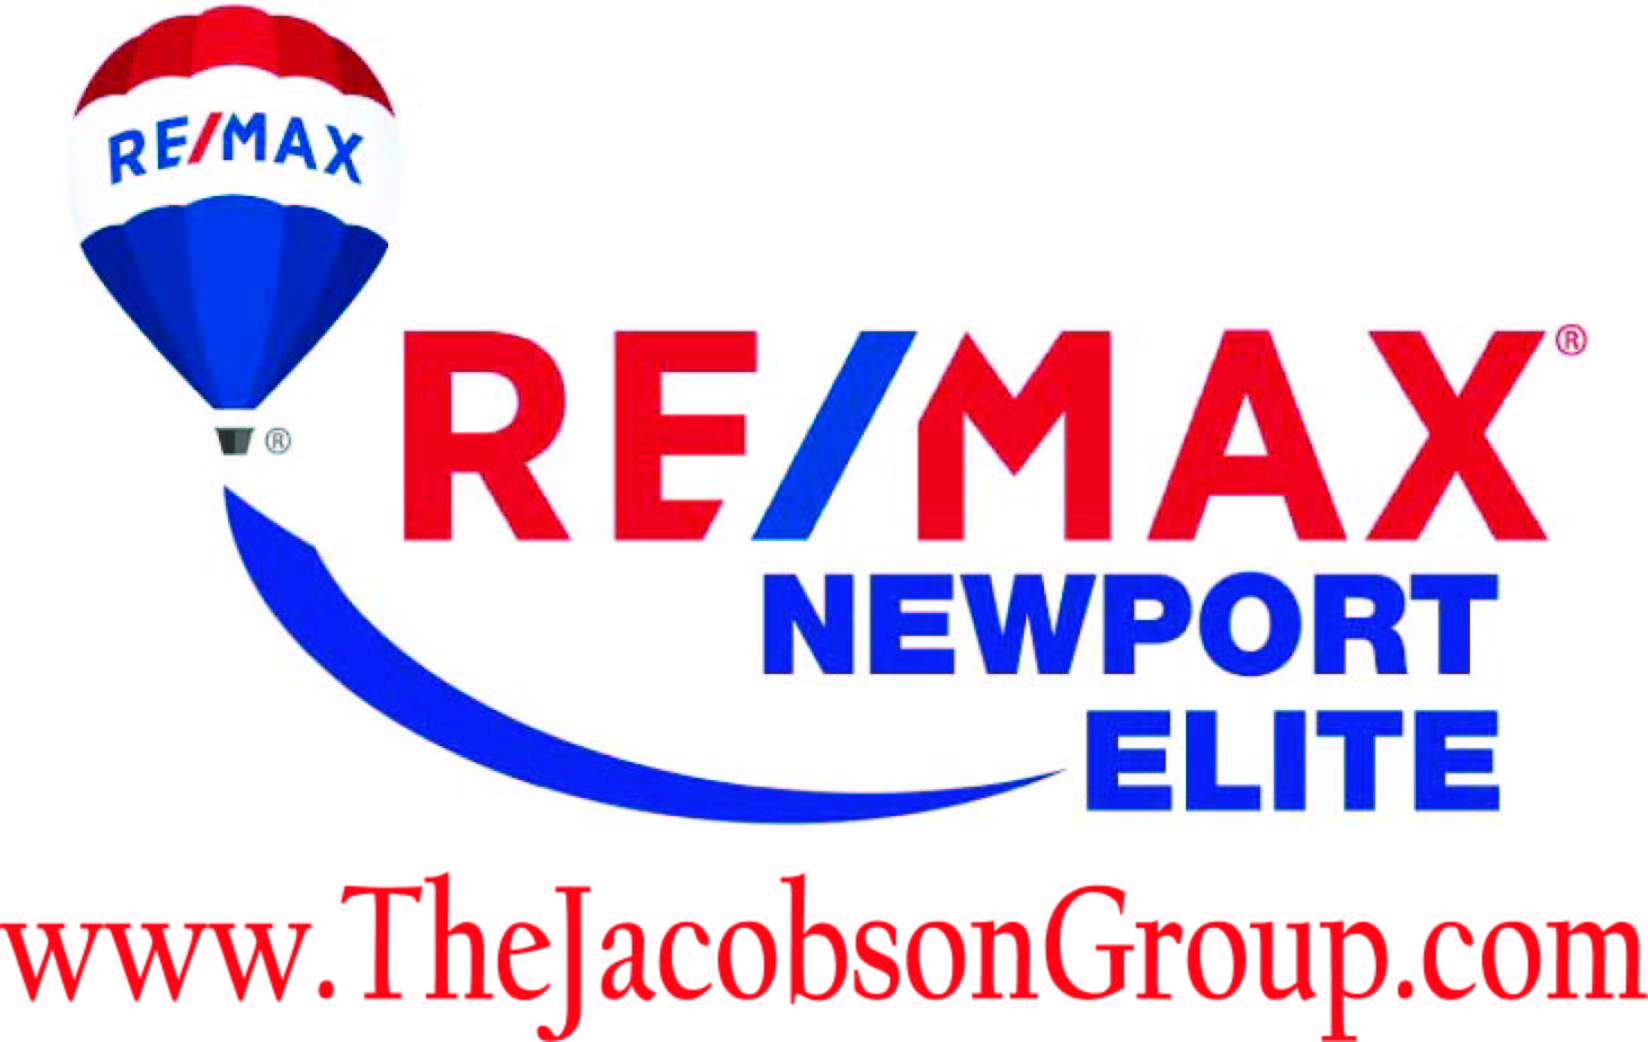 REMAX Newport Elite - Margaret Jacobson